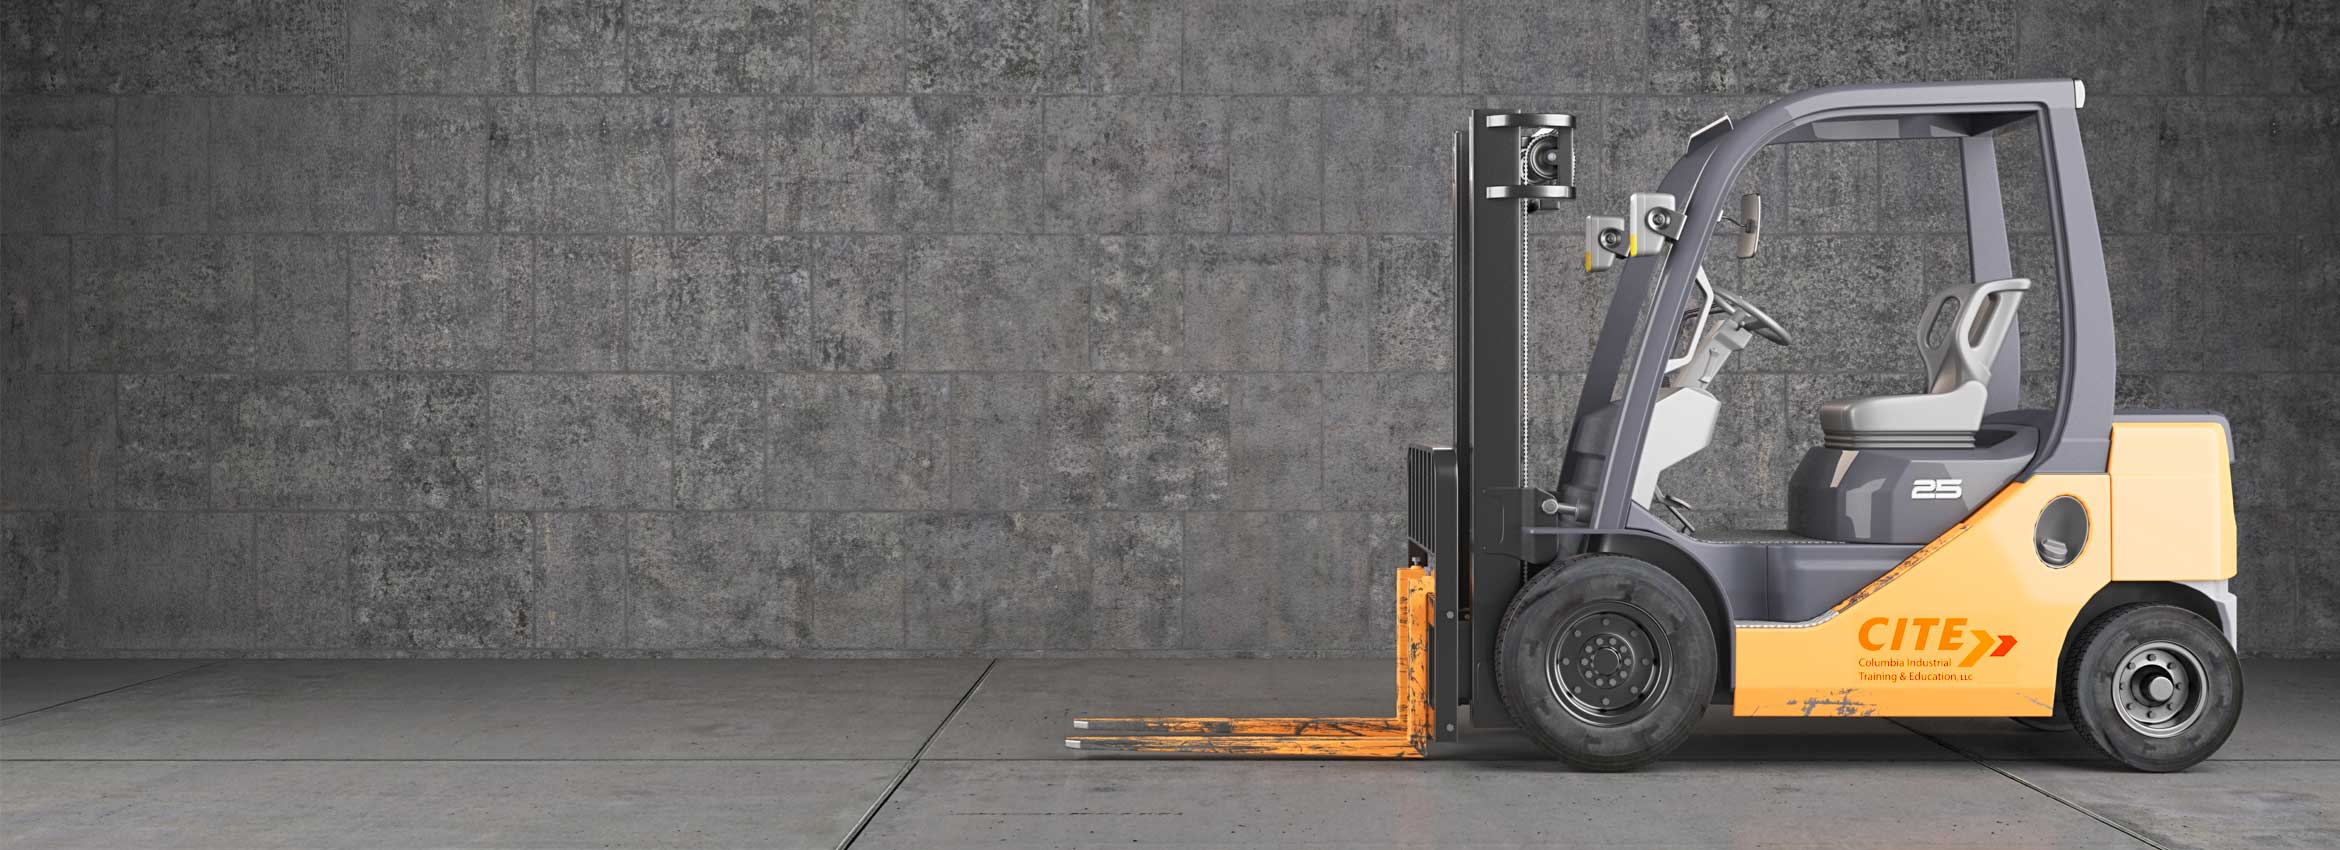 Forklift Training Aerial Lift Training And Safety Training